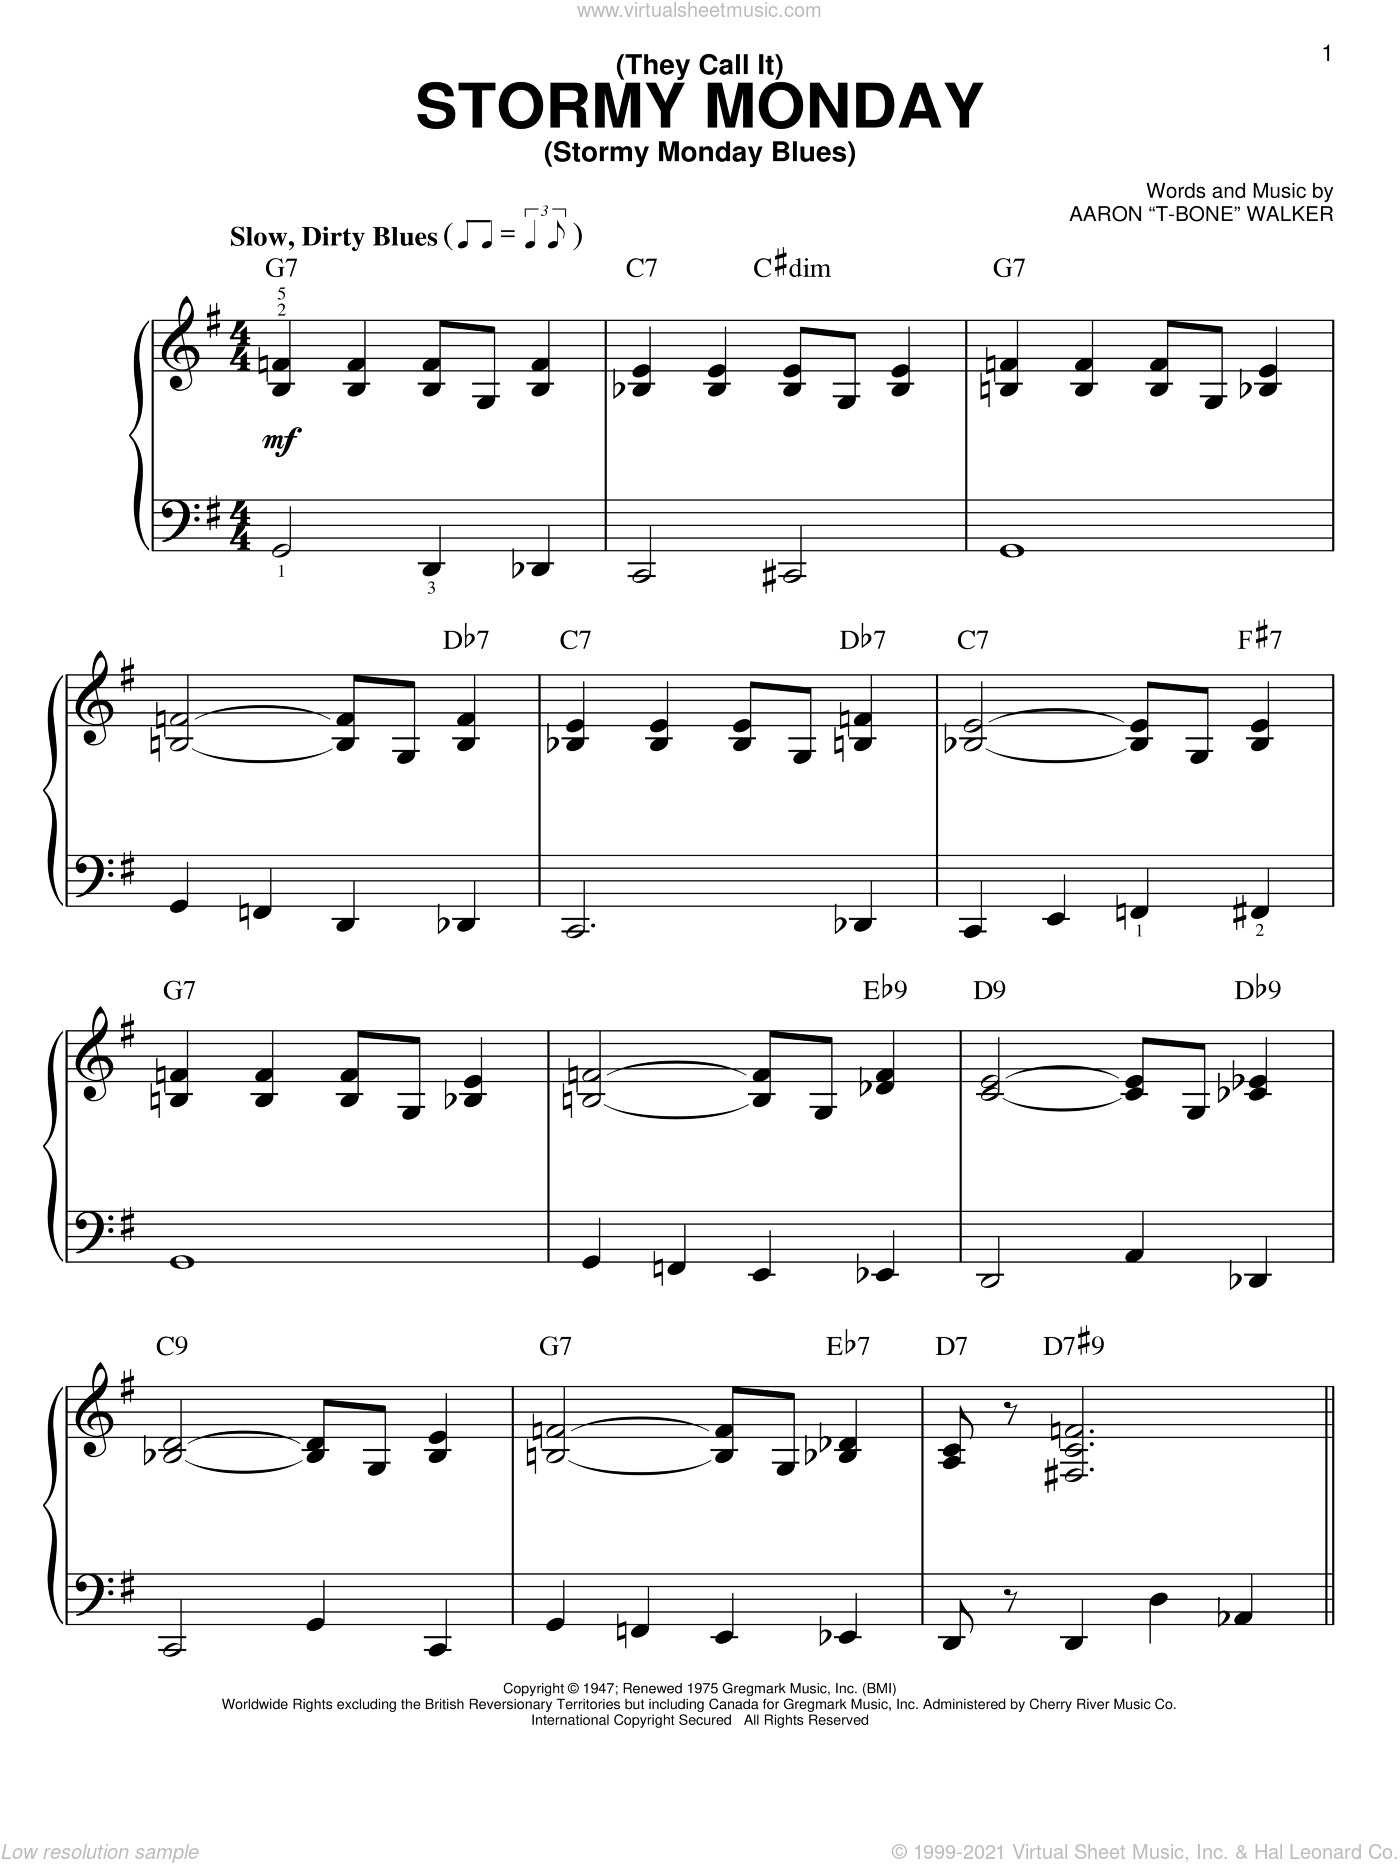 (They Call It) Stormy Monday (Stormy Monday Blues) sheet music for piano solo by Aaron 'T-Bone' Walker, easy